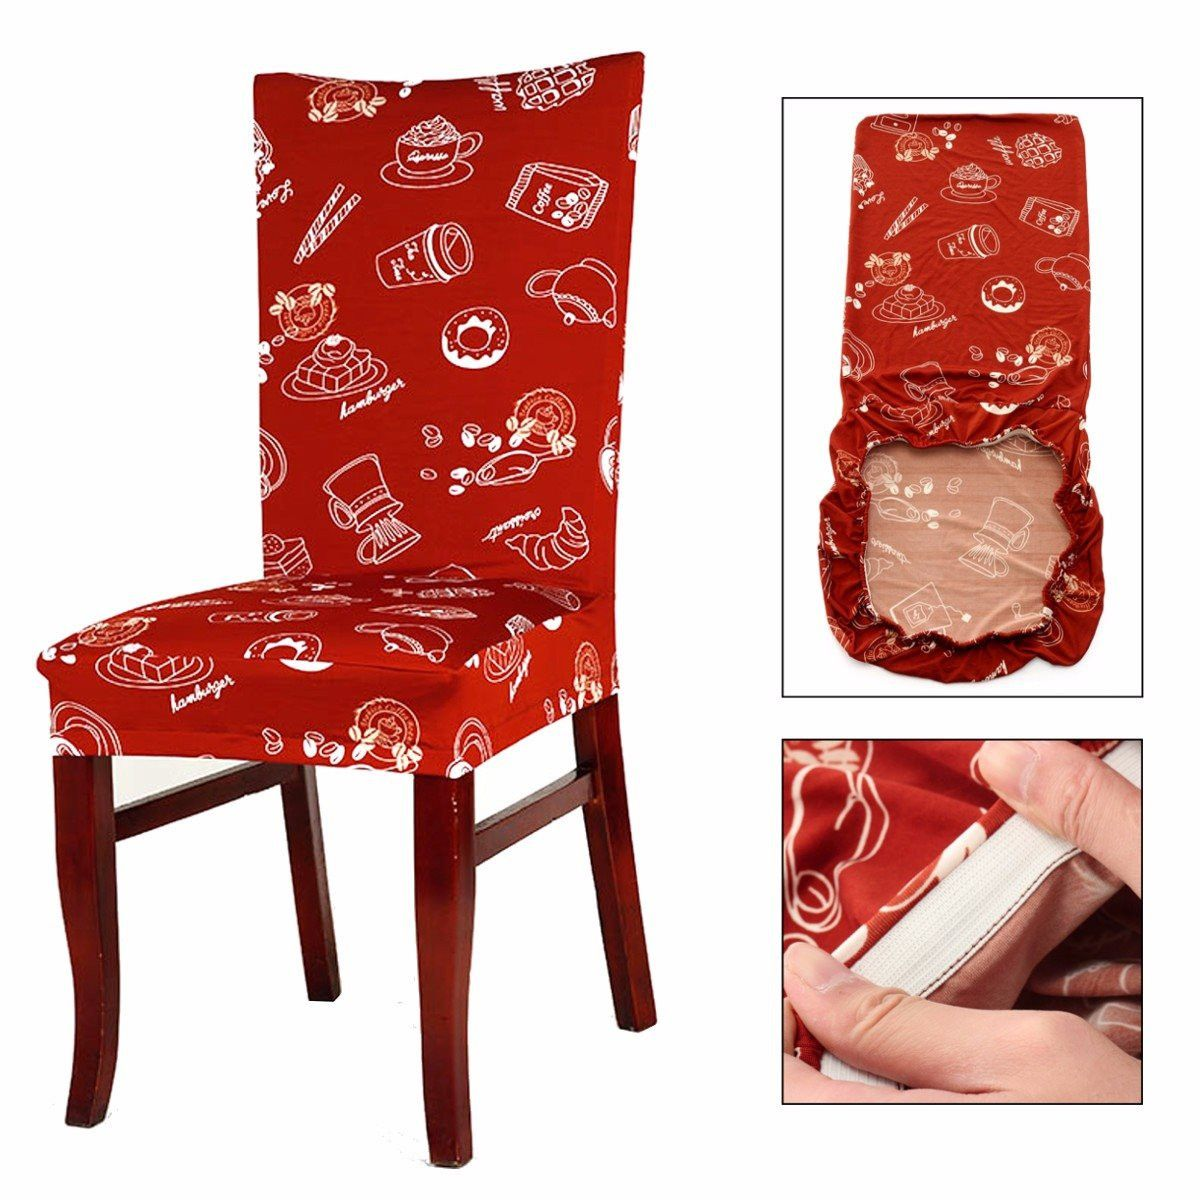 Sure Fit Soft Suede Shorty Dining Room Chair Slipcover 70 Sure Fit Soft Suede Shorty Dining Room Chair Slipcover